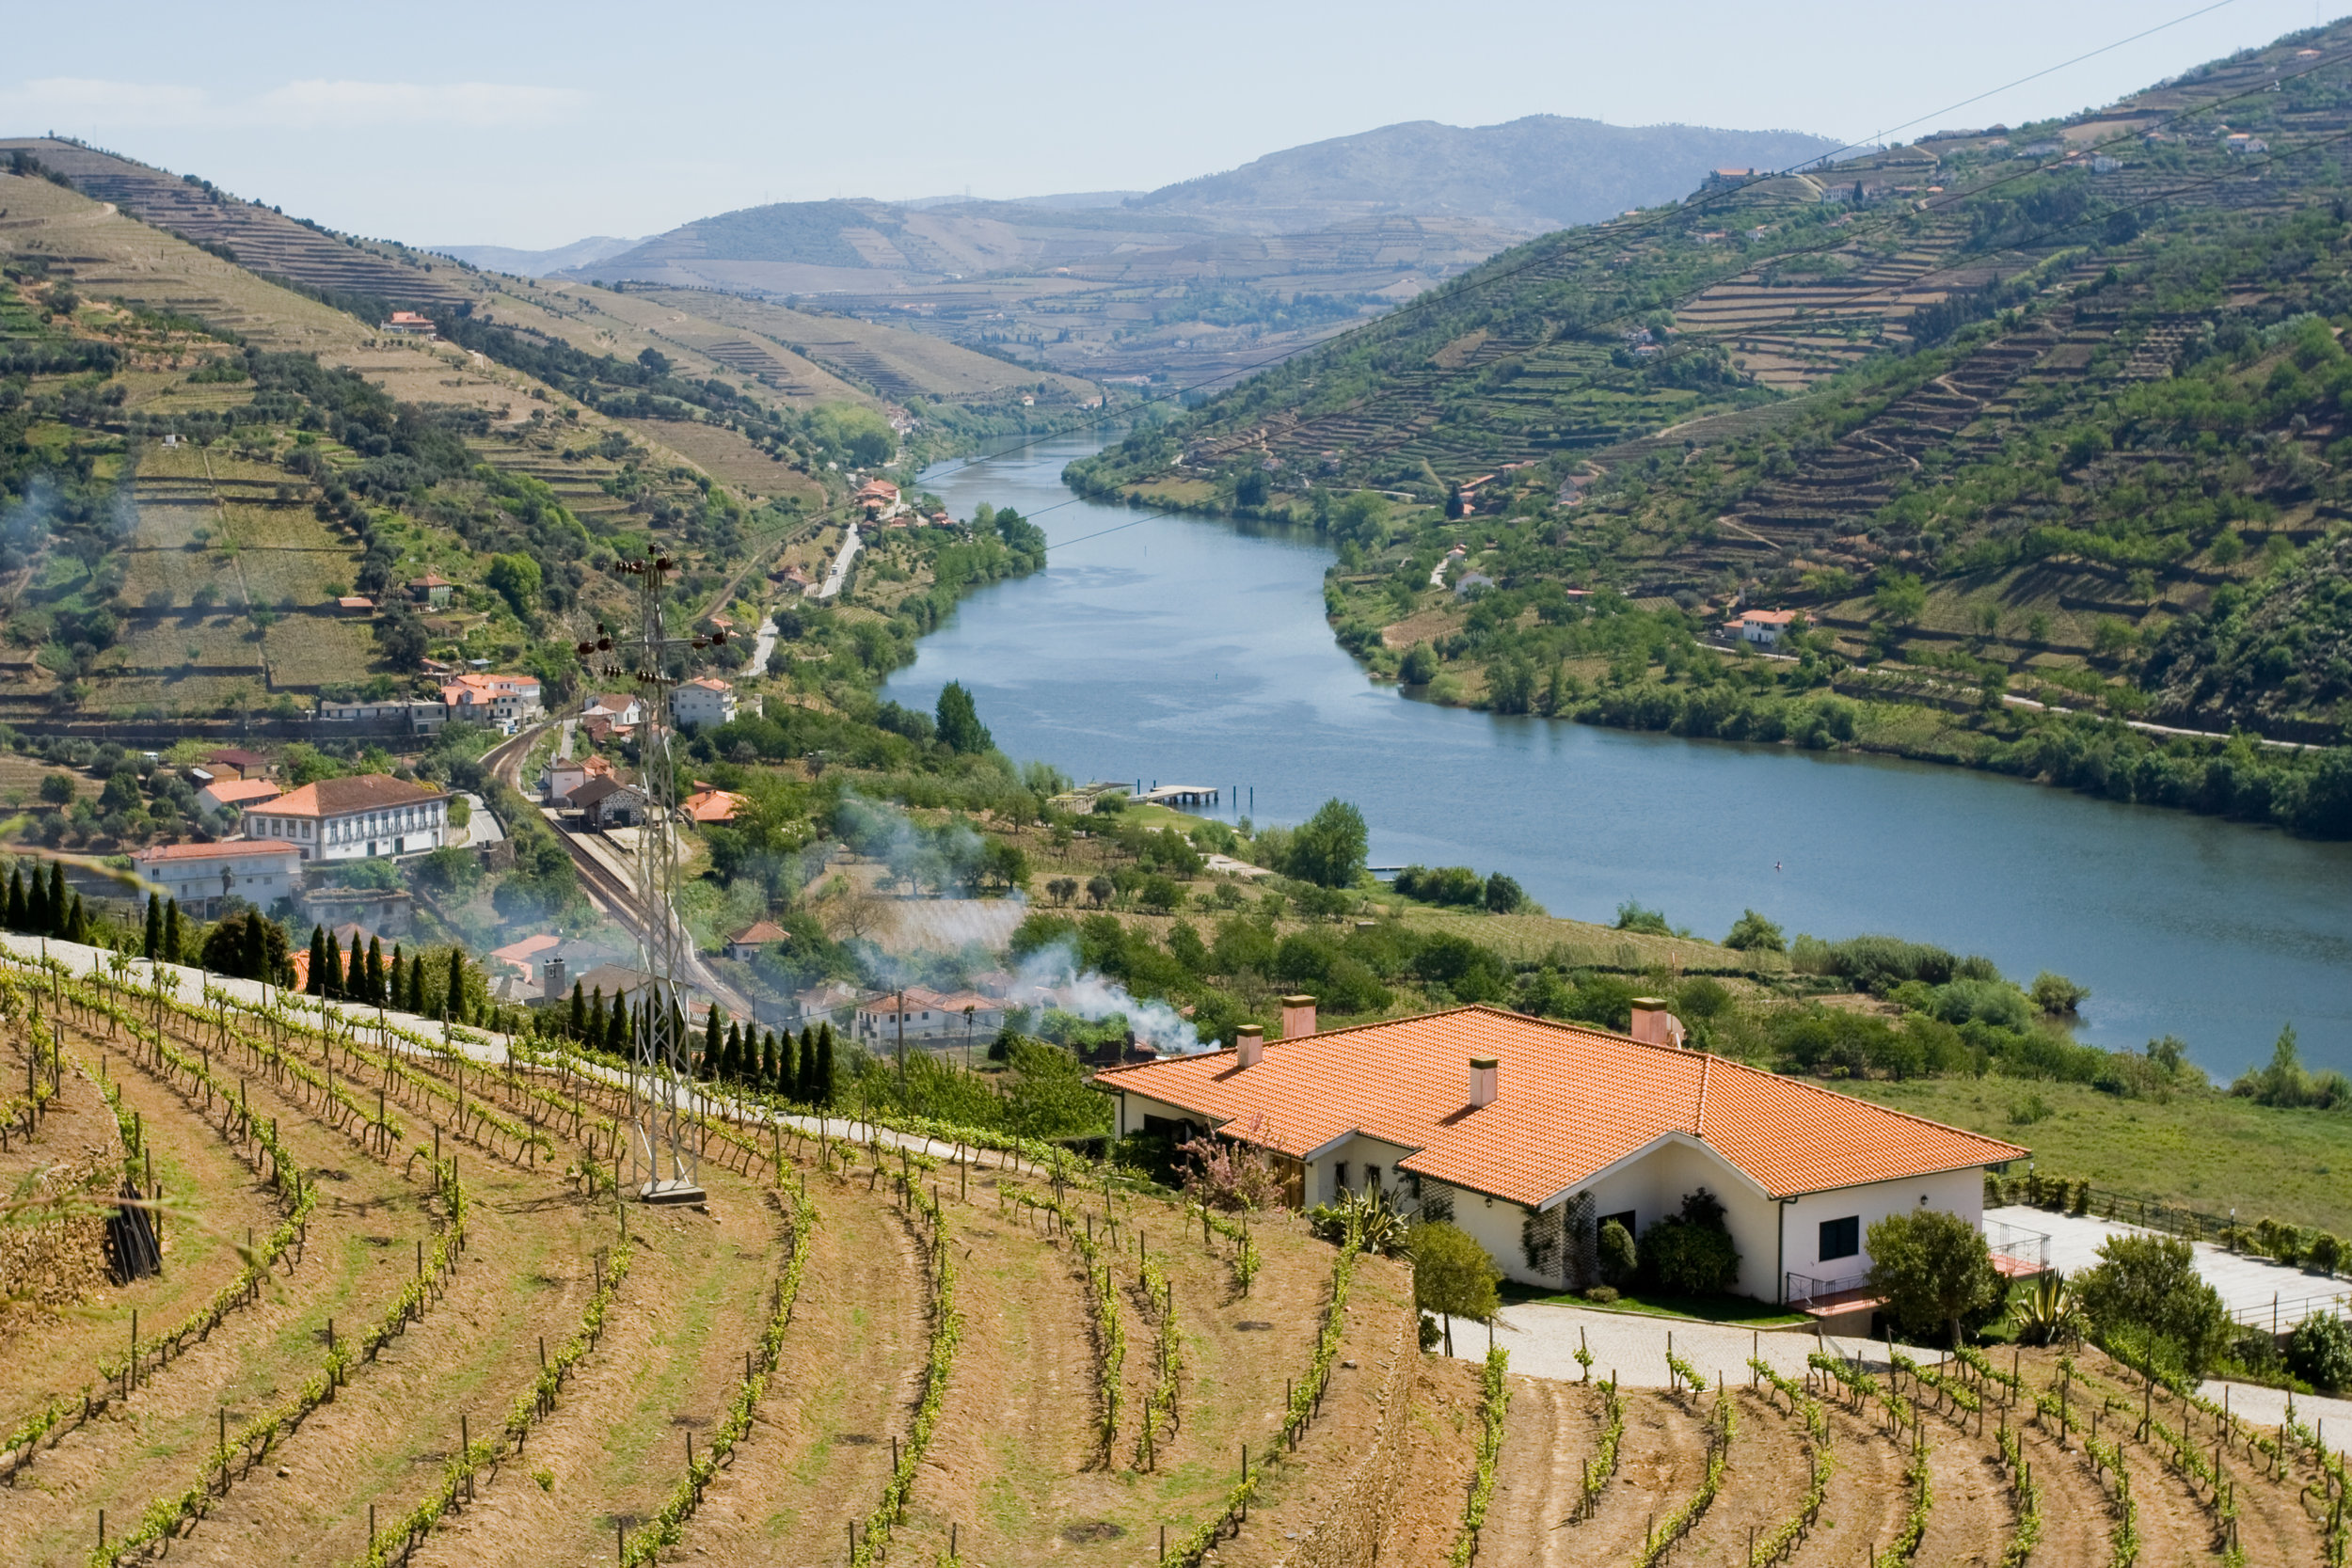 The beautiful hills of the Douro Valley.Image credit:  Marco Varisco / Creative Commons